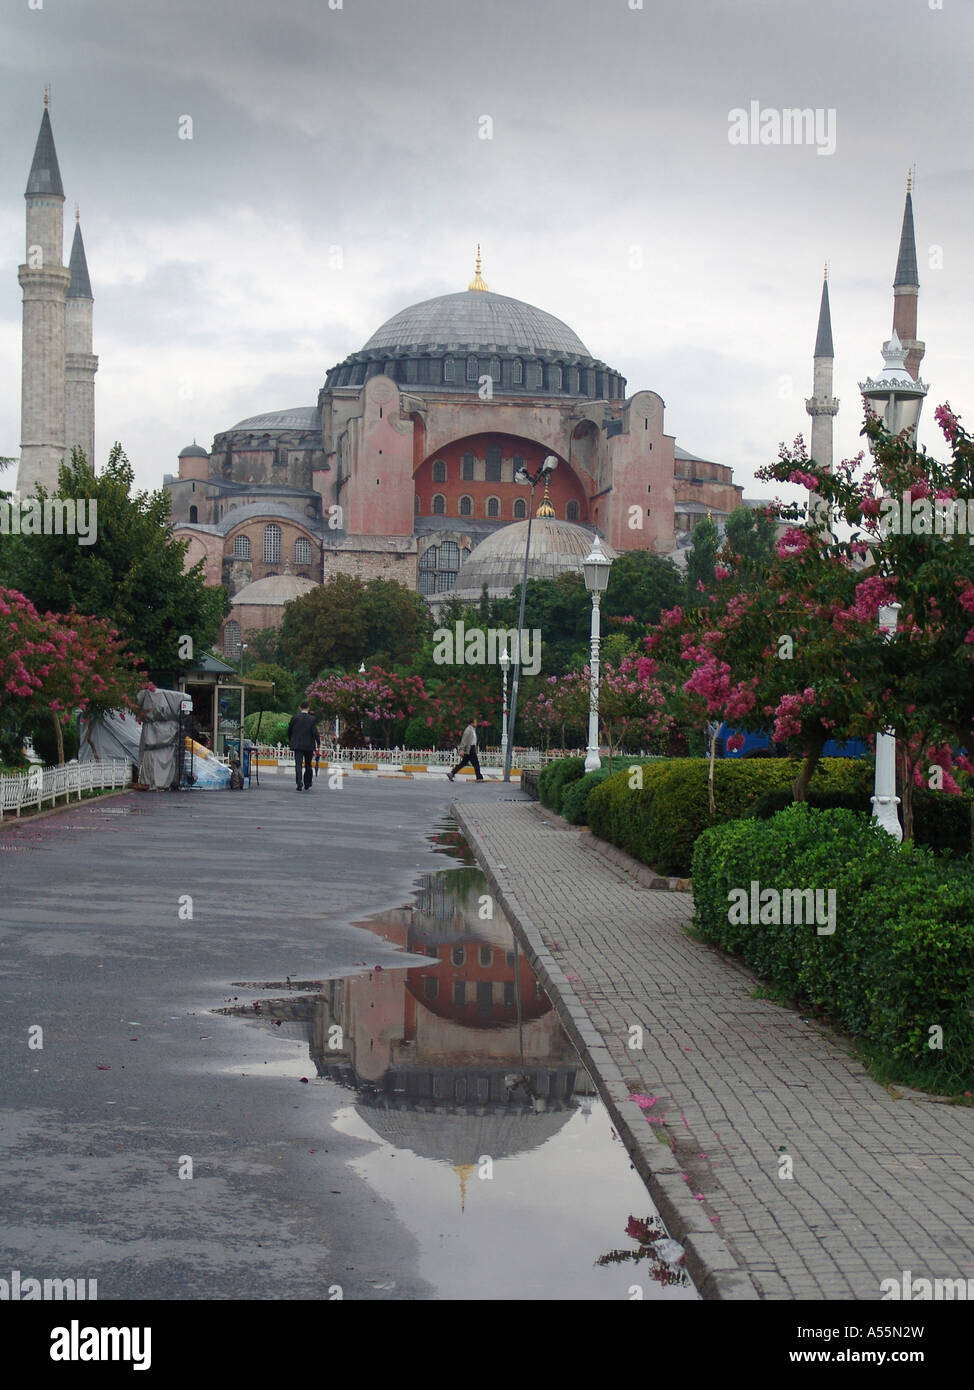 Painet is1547 turkey haghia sophia museum church dedicated 537 ad by emperor justinian converted mosque ottomans Stock Photo